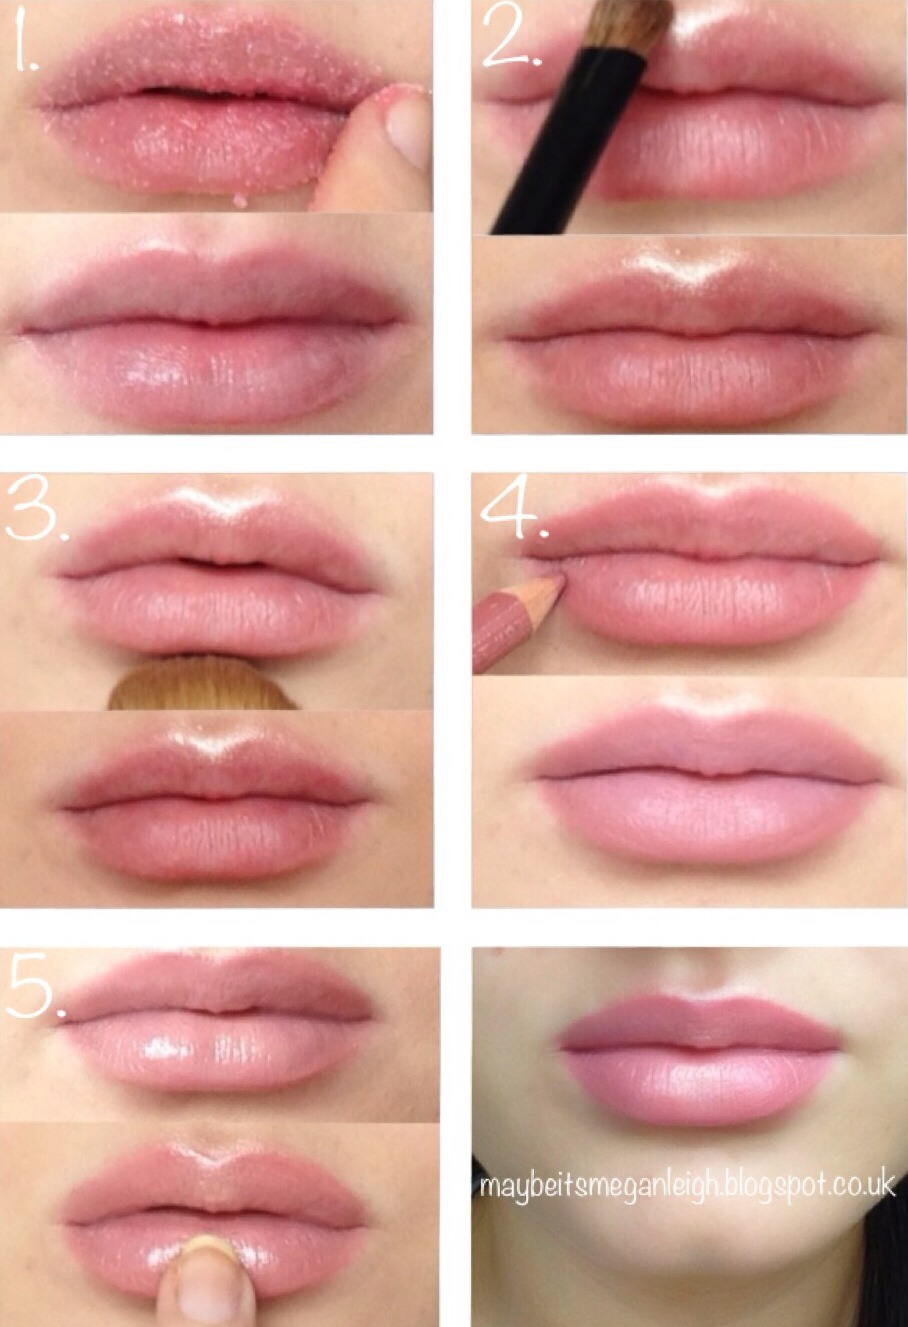 By Using Highlighter In Key Places On Your Lips, You Can Get A Fuller Look  Red Lips 2 Easter Eggs How To Draw Nose First Make